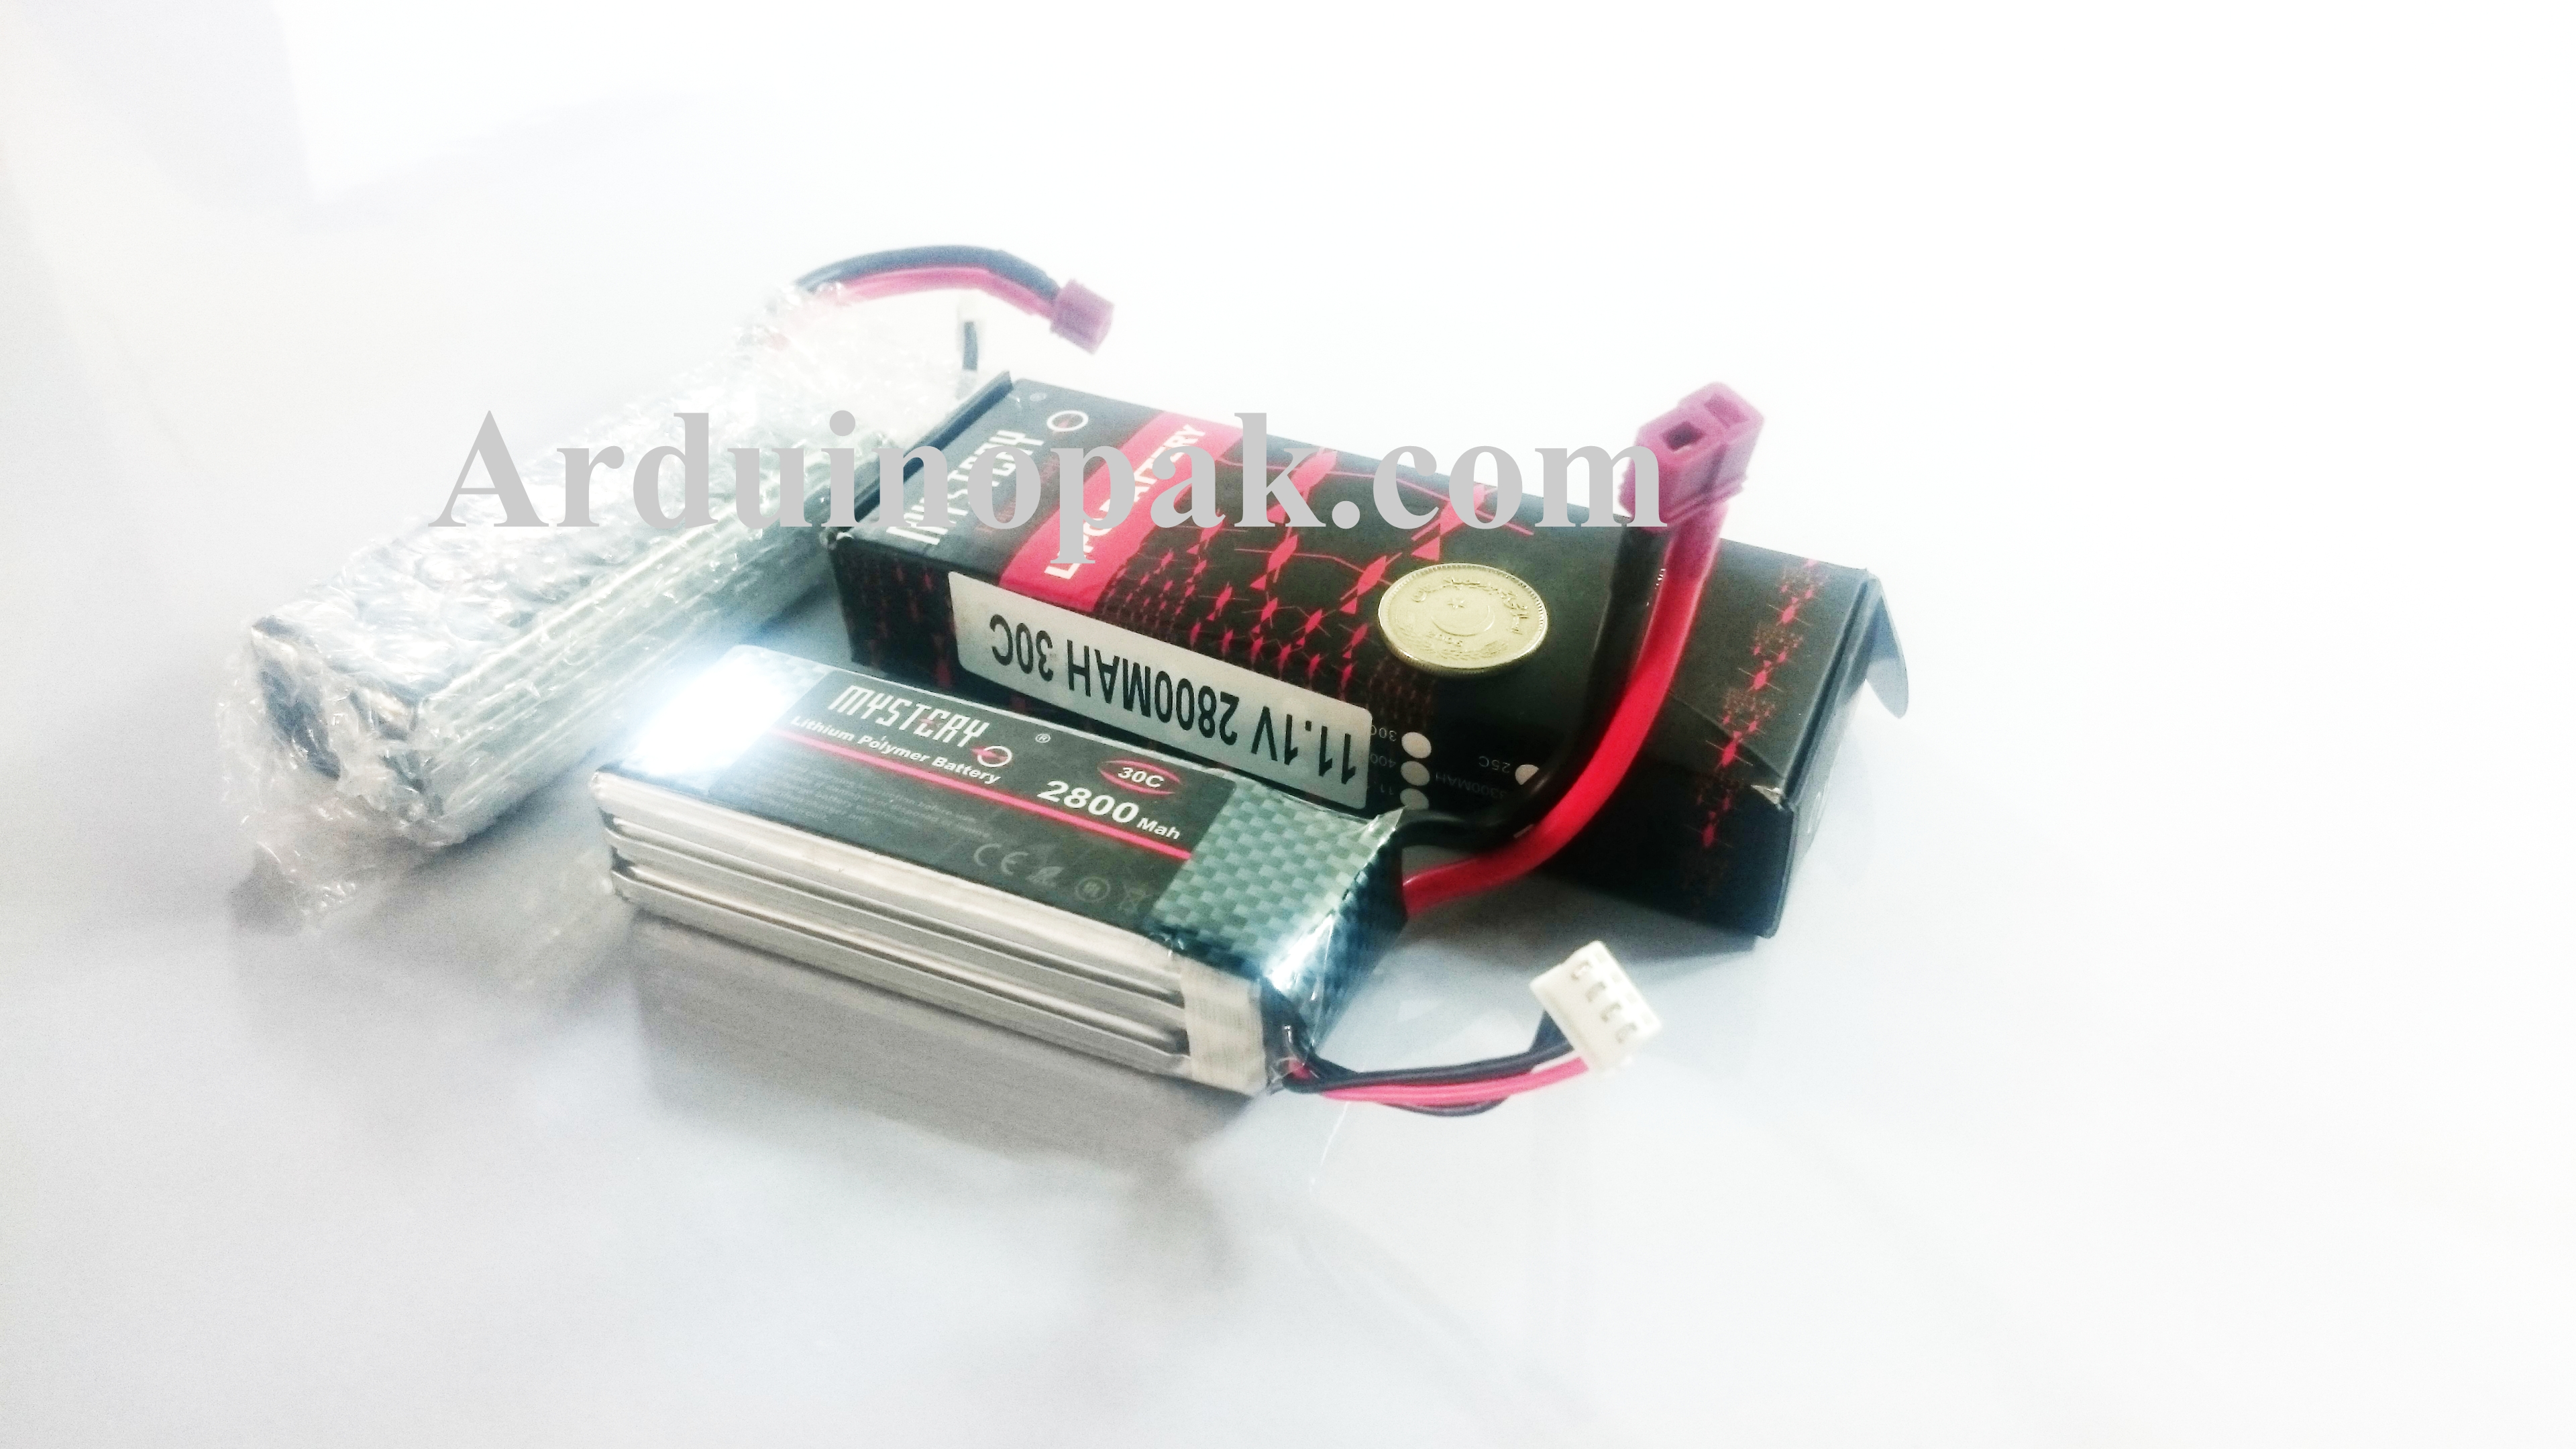 Li-Po Battery 2800mAh 11.1v 3S1P 30C Rechargeable